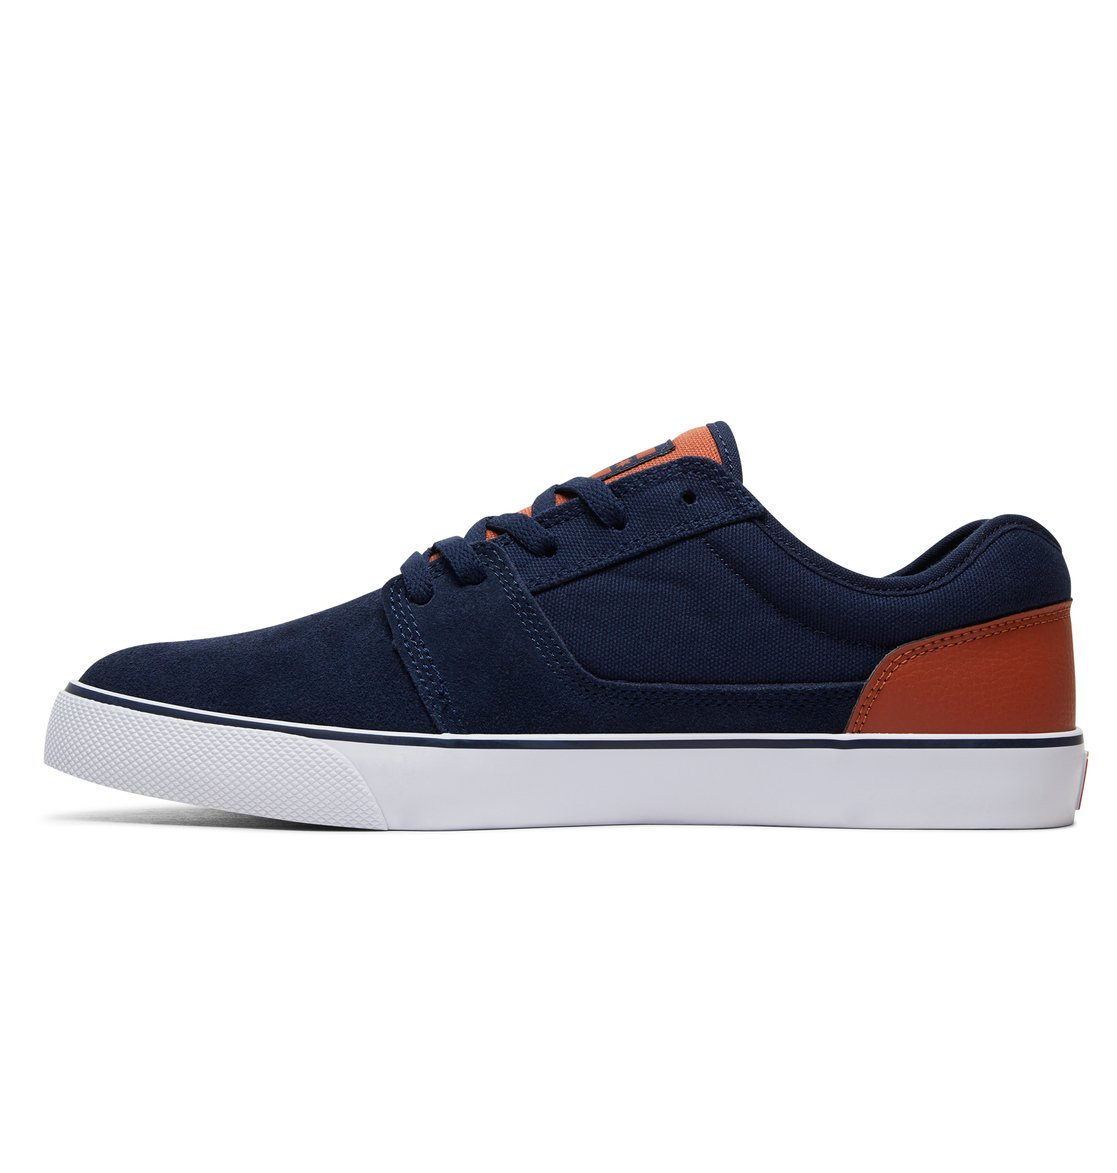 DC-Shoes-Tonik-Baskets-pour-Homme-302905 miniature 9